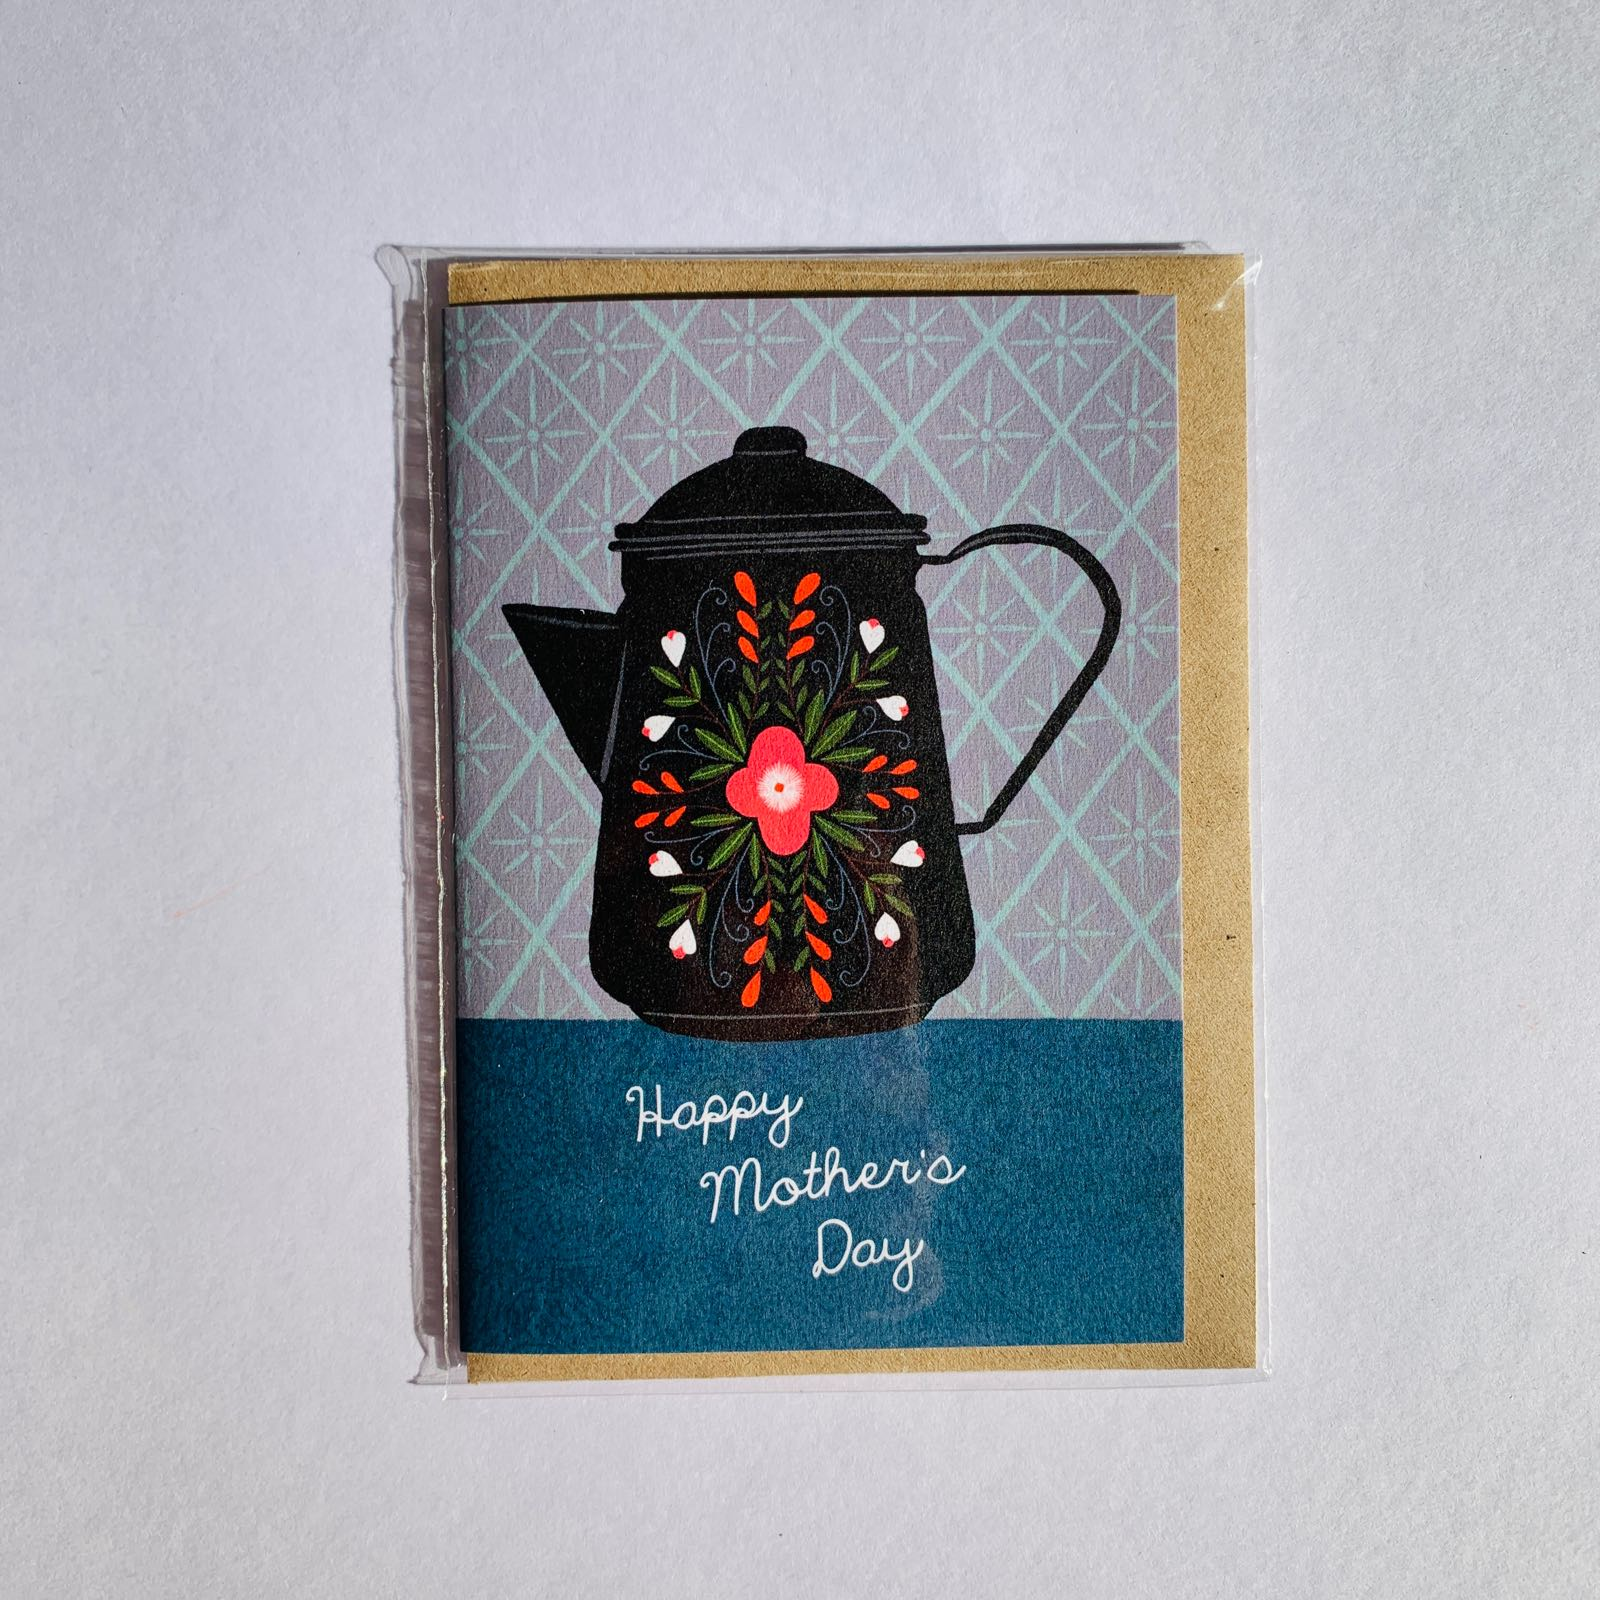 MaggieMagoo Designs - 'Coffee Pot' Mother's Day Card